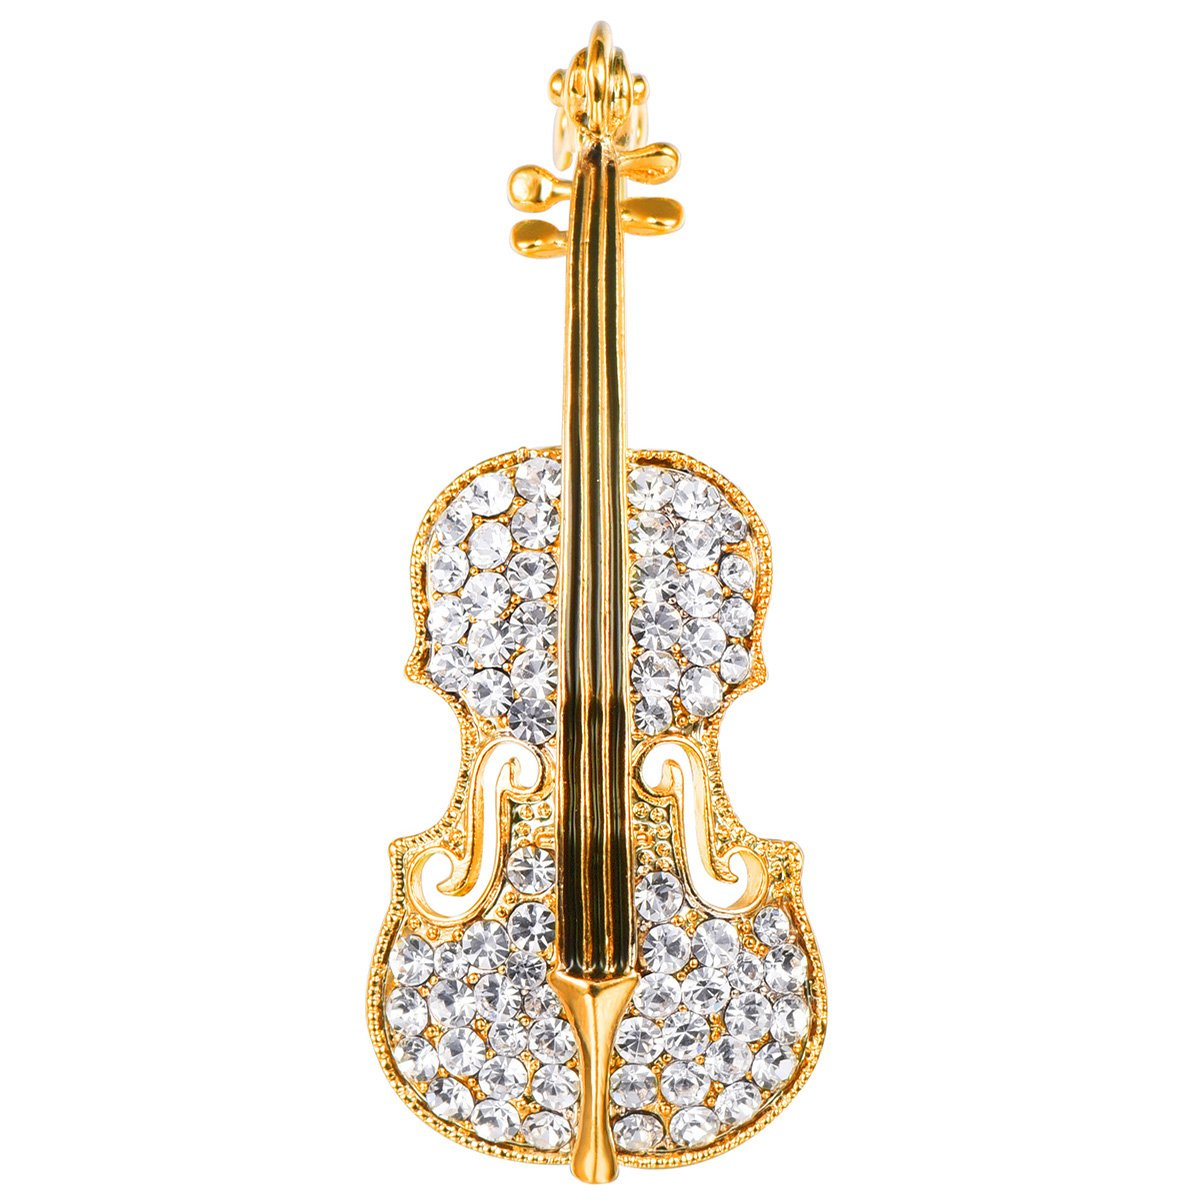 FOCALOOK Violin Brooch Charm Art Deco Jewelry Lapel Pin Clear Crystal Rhinestone Gold Plated Luxury Bling Cute Musical Brooch